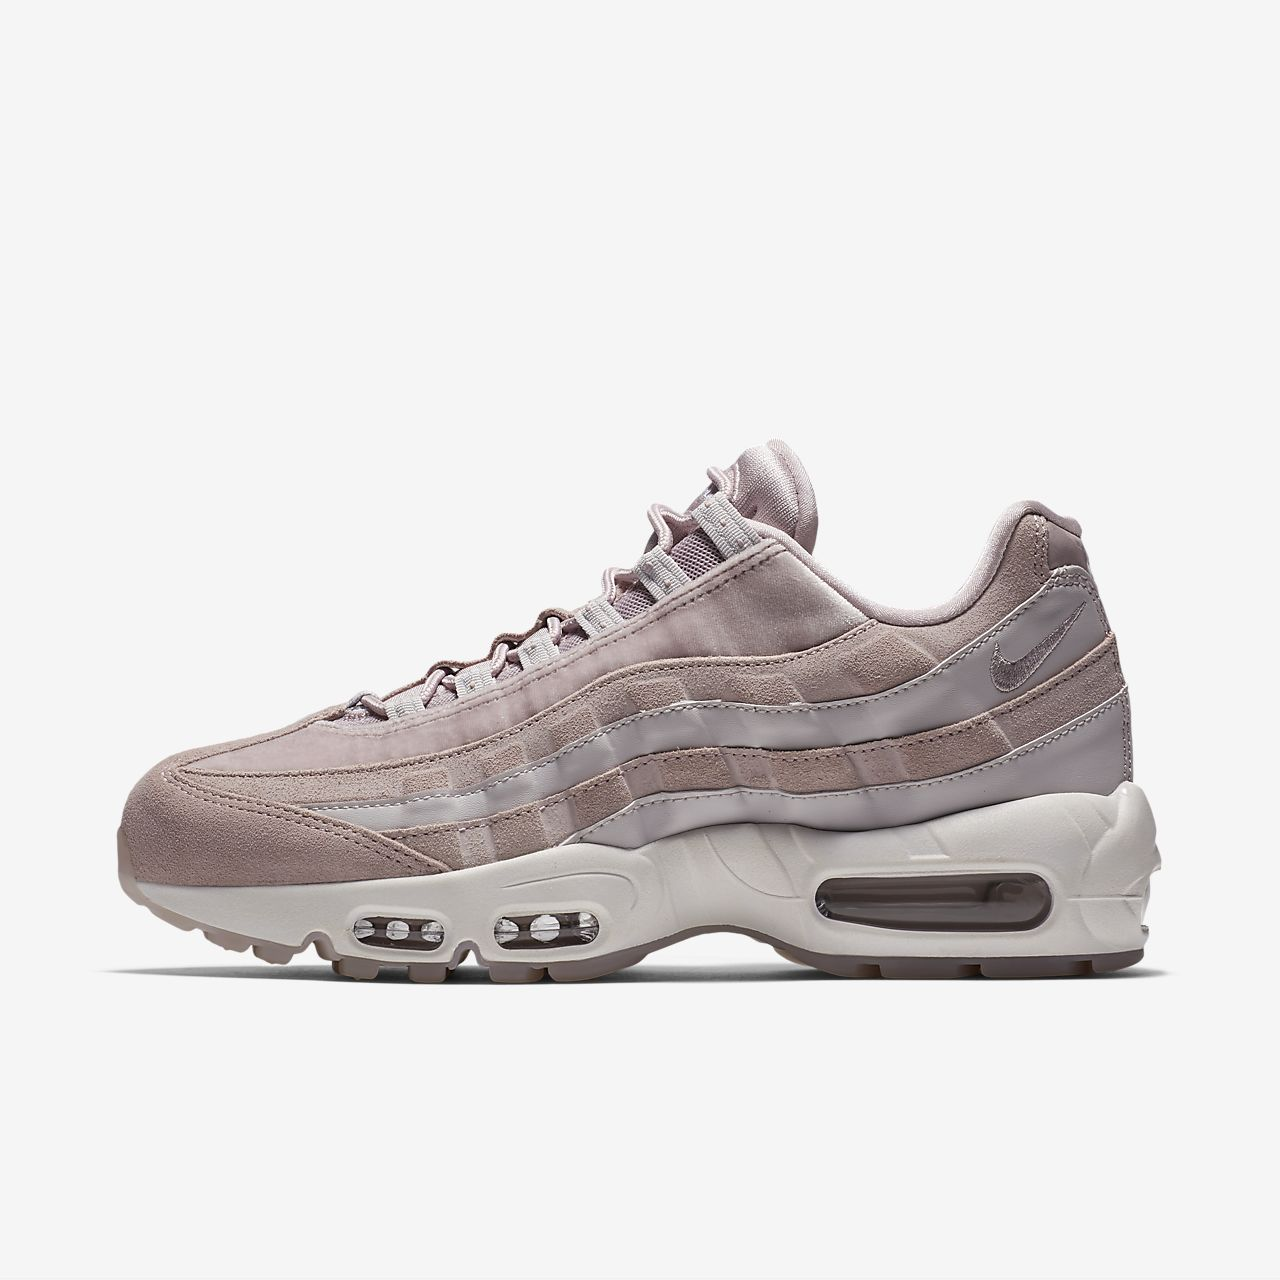 nike air max 95 lx women 39 s shoe gb. Black Bedroom Furniture Sets. Home Design Ideas